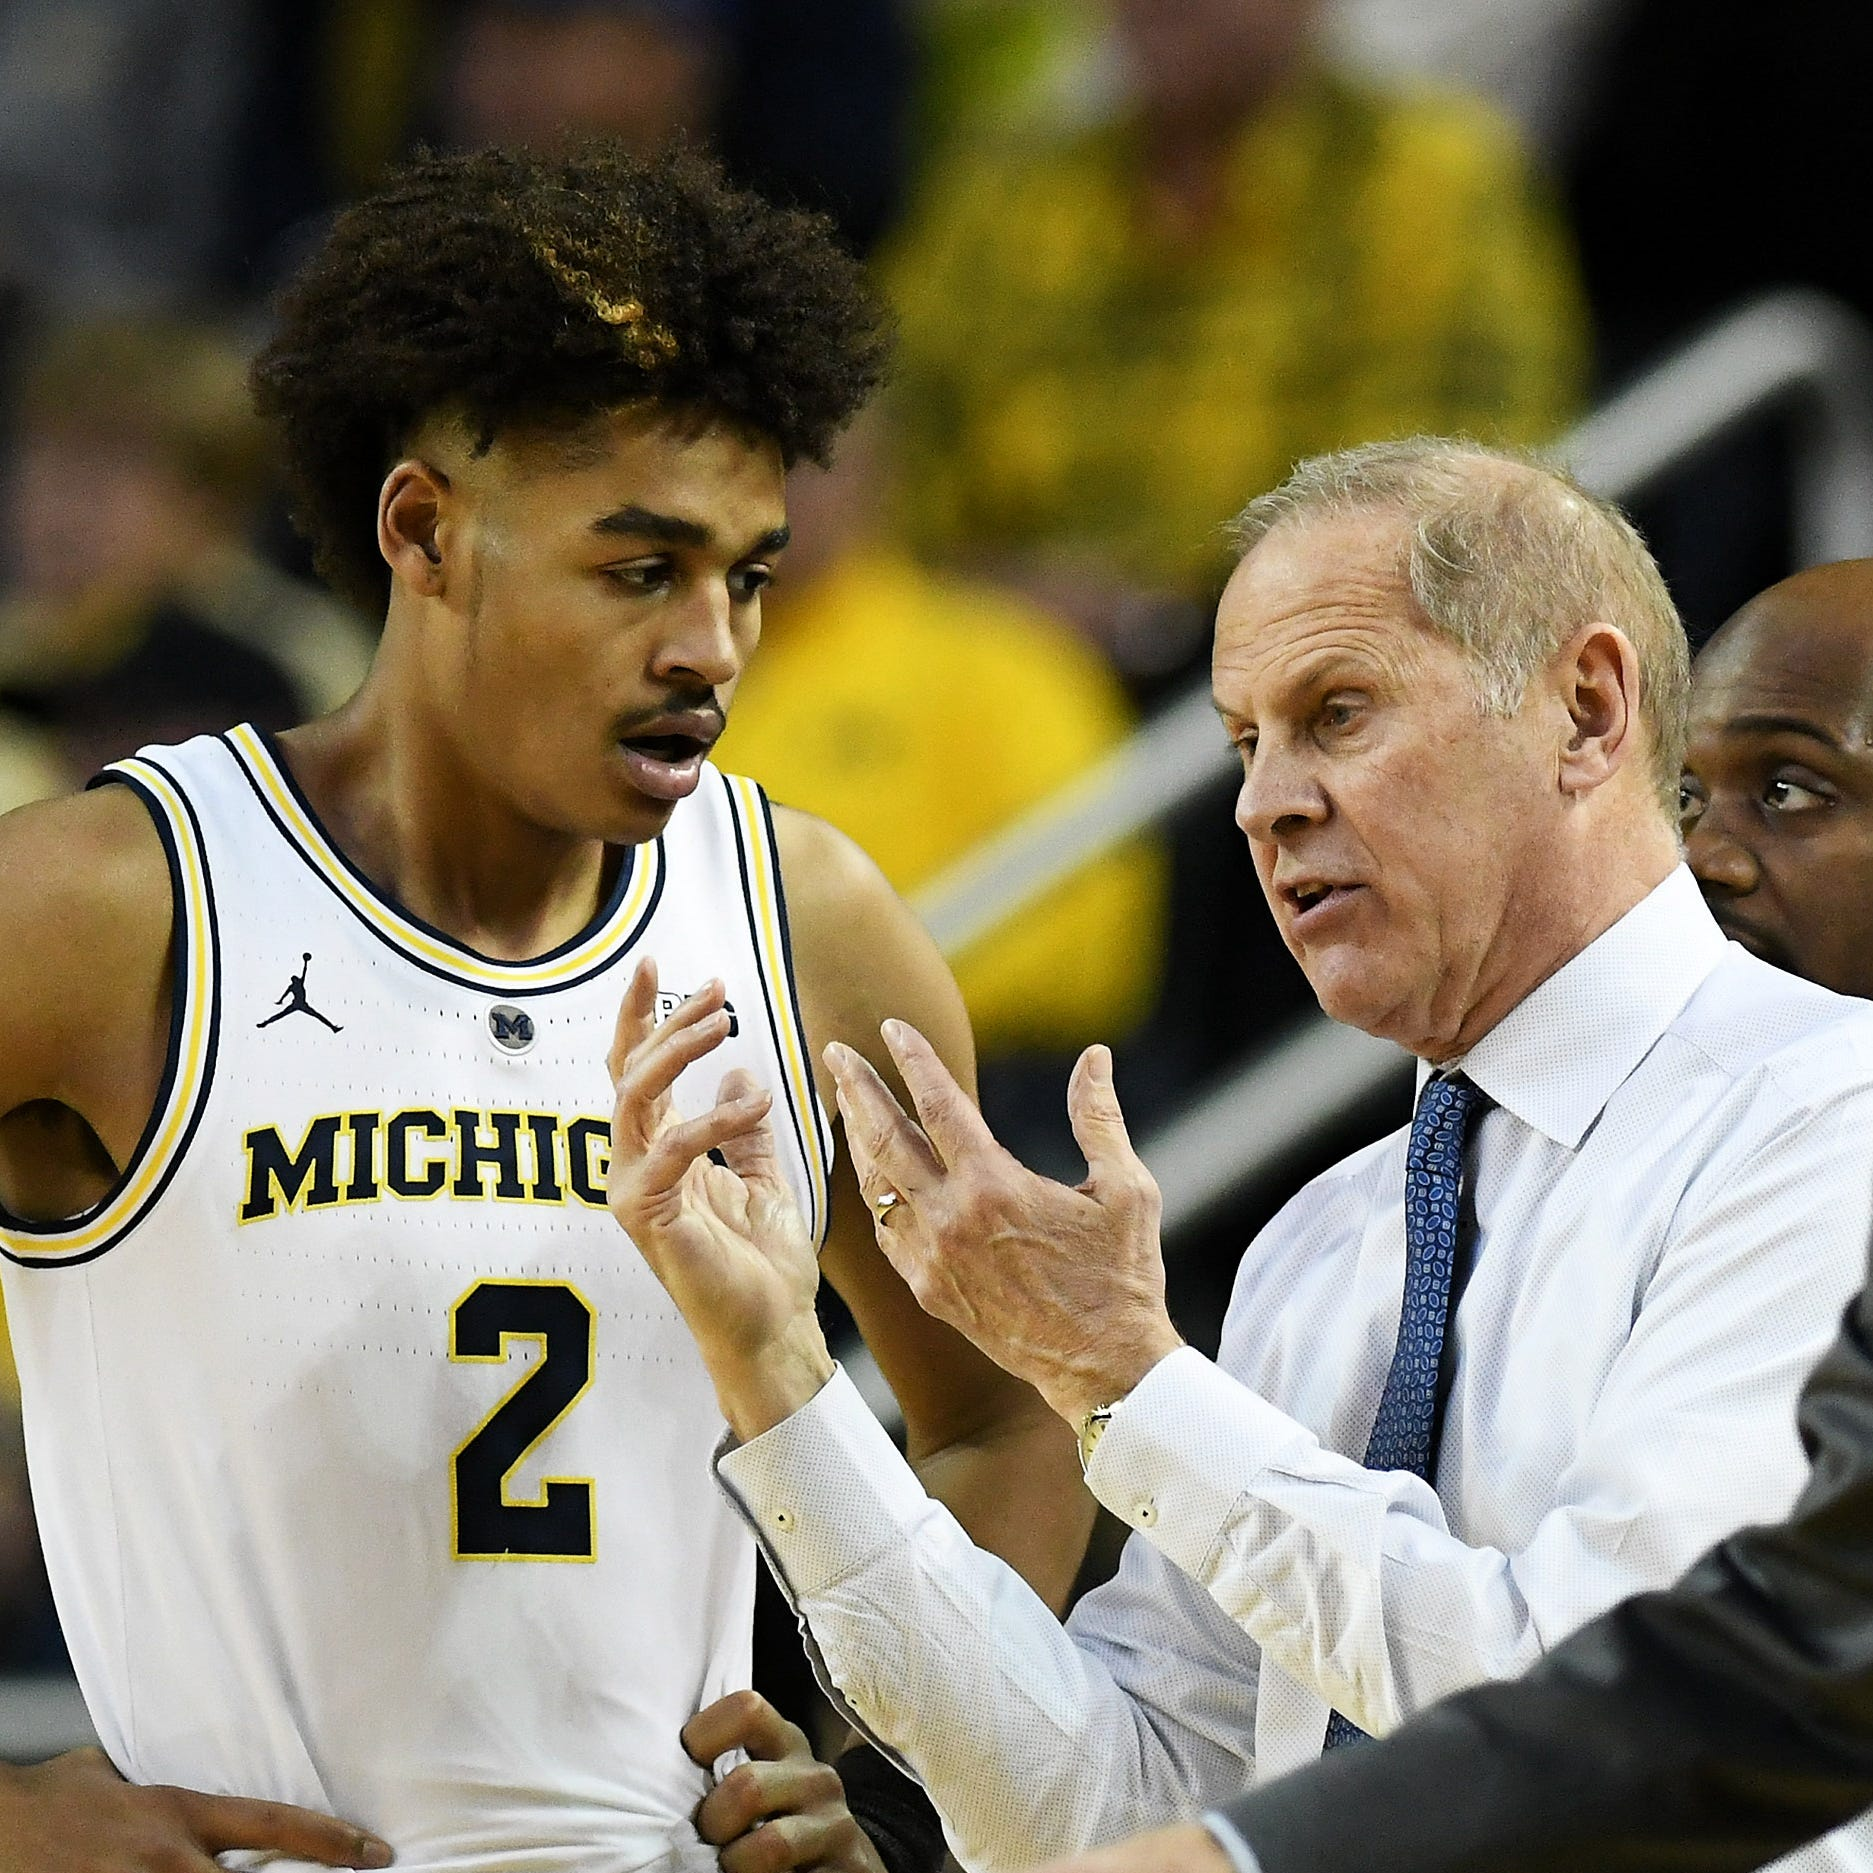 NBA draft decisions a 'difficult dance' for Michigan, Beilein